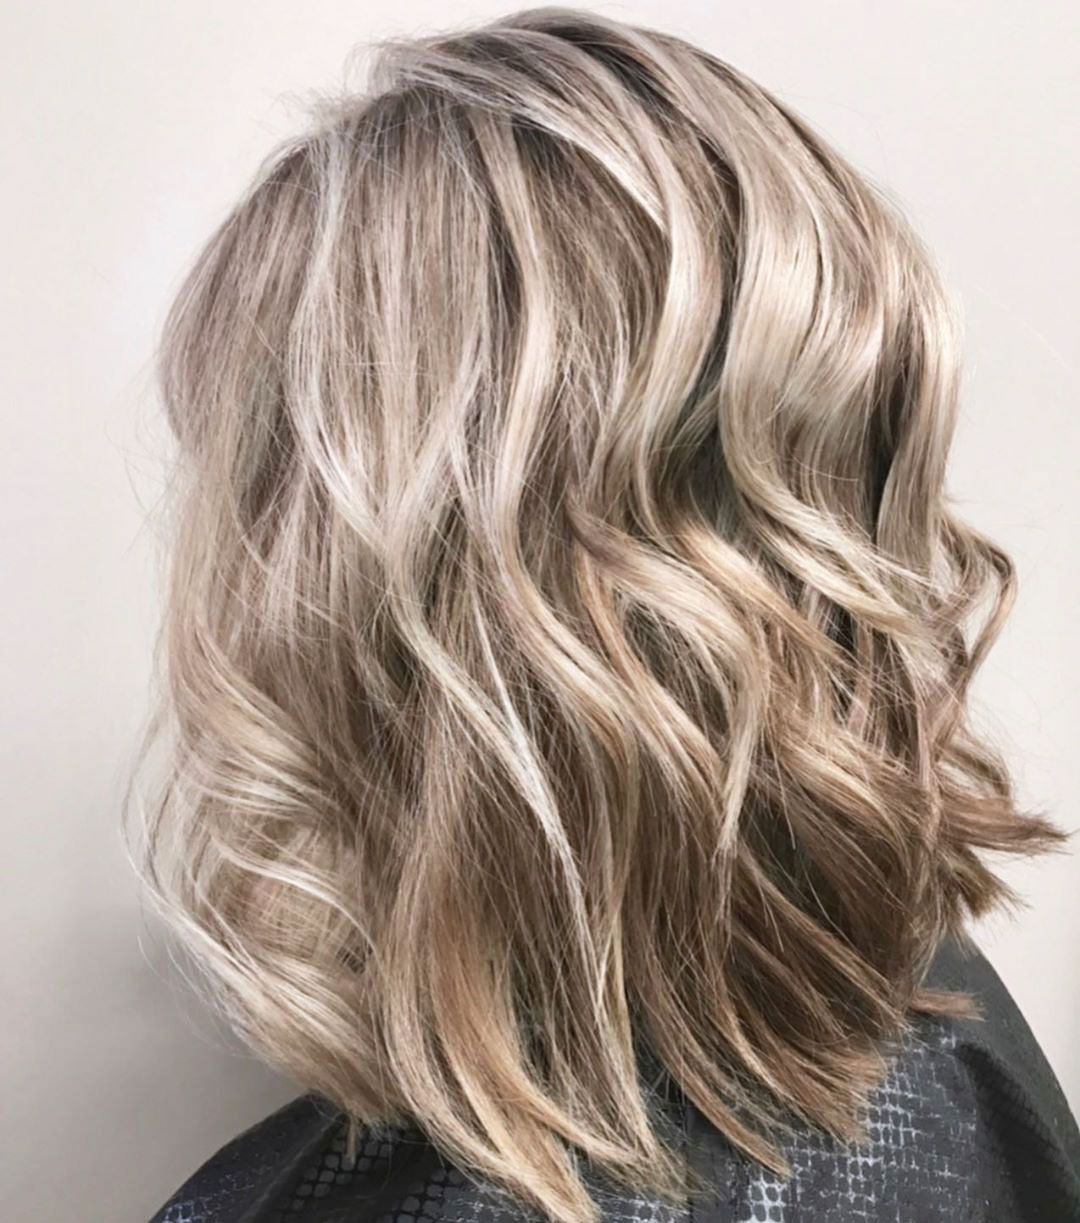 31 Lob Haircuts For Thick Hair And Shoulder Length In 2020 In 2020 Lob Haircut Haircut For Thick Hair Thick Hair Styles